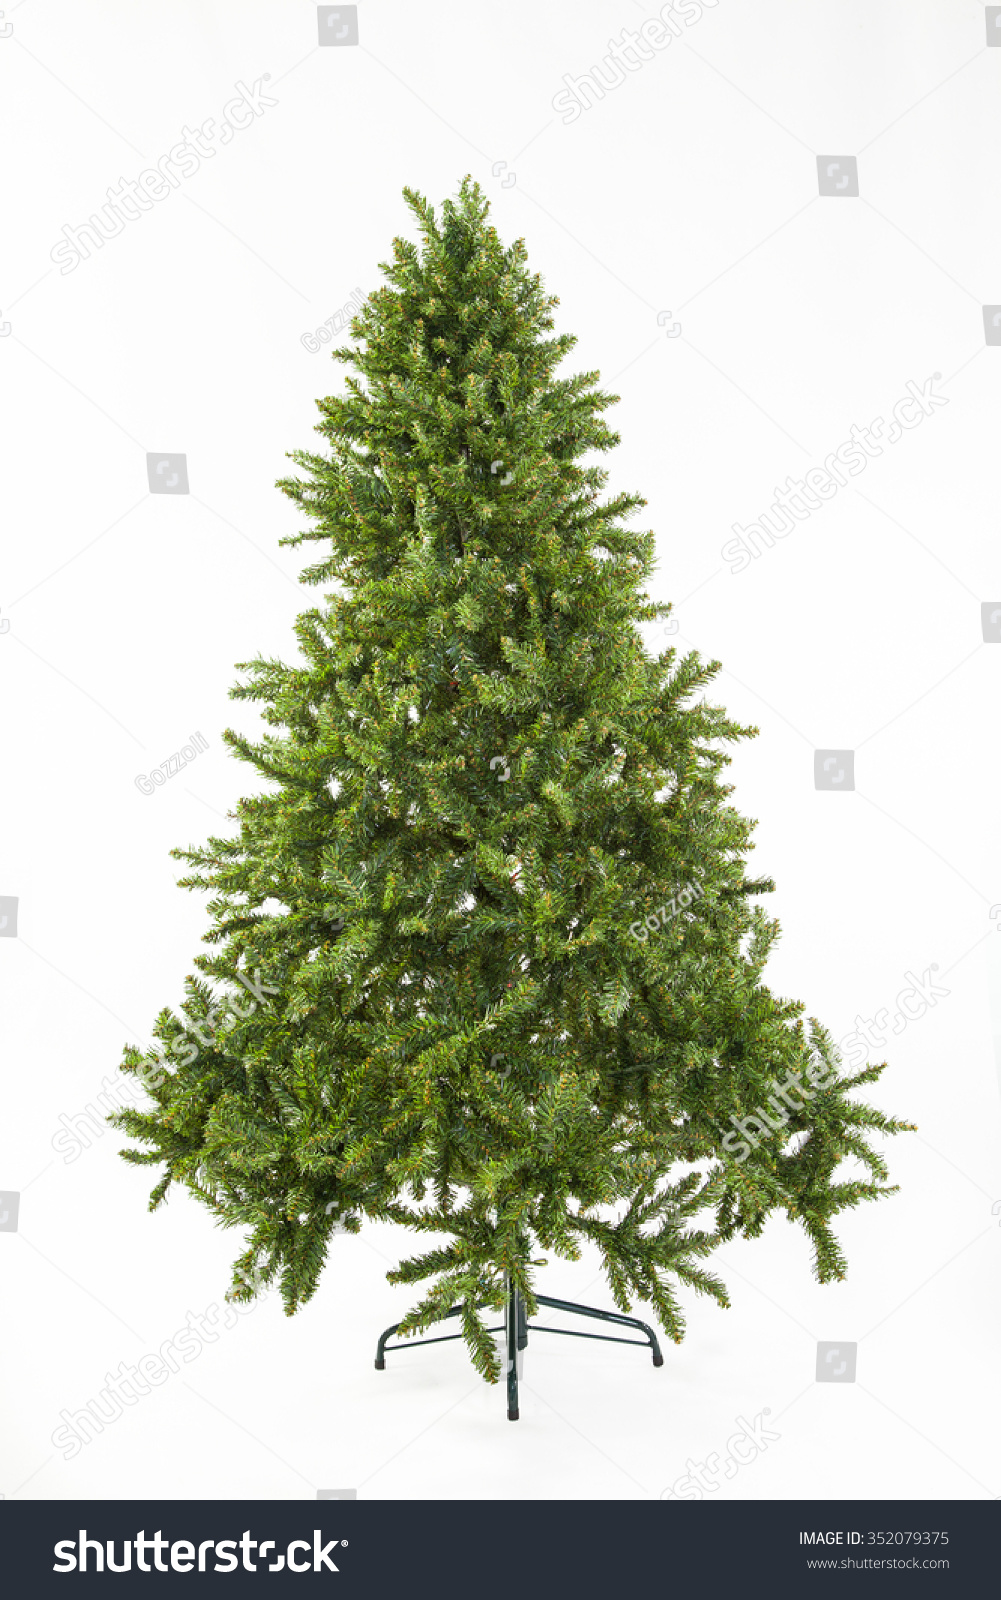 Undecorated bare green artificial Christmas tree on a metal stand over a white background for the festive holiday season #352079375